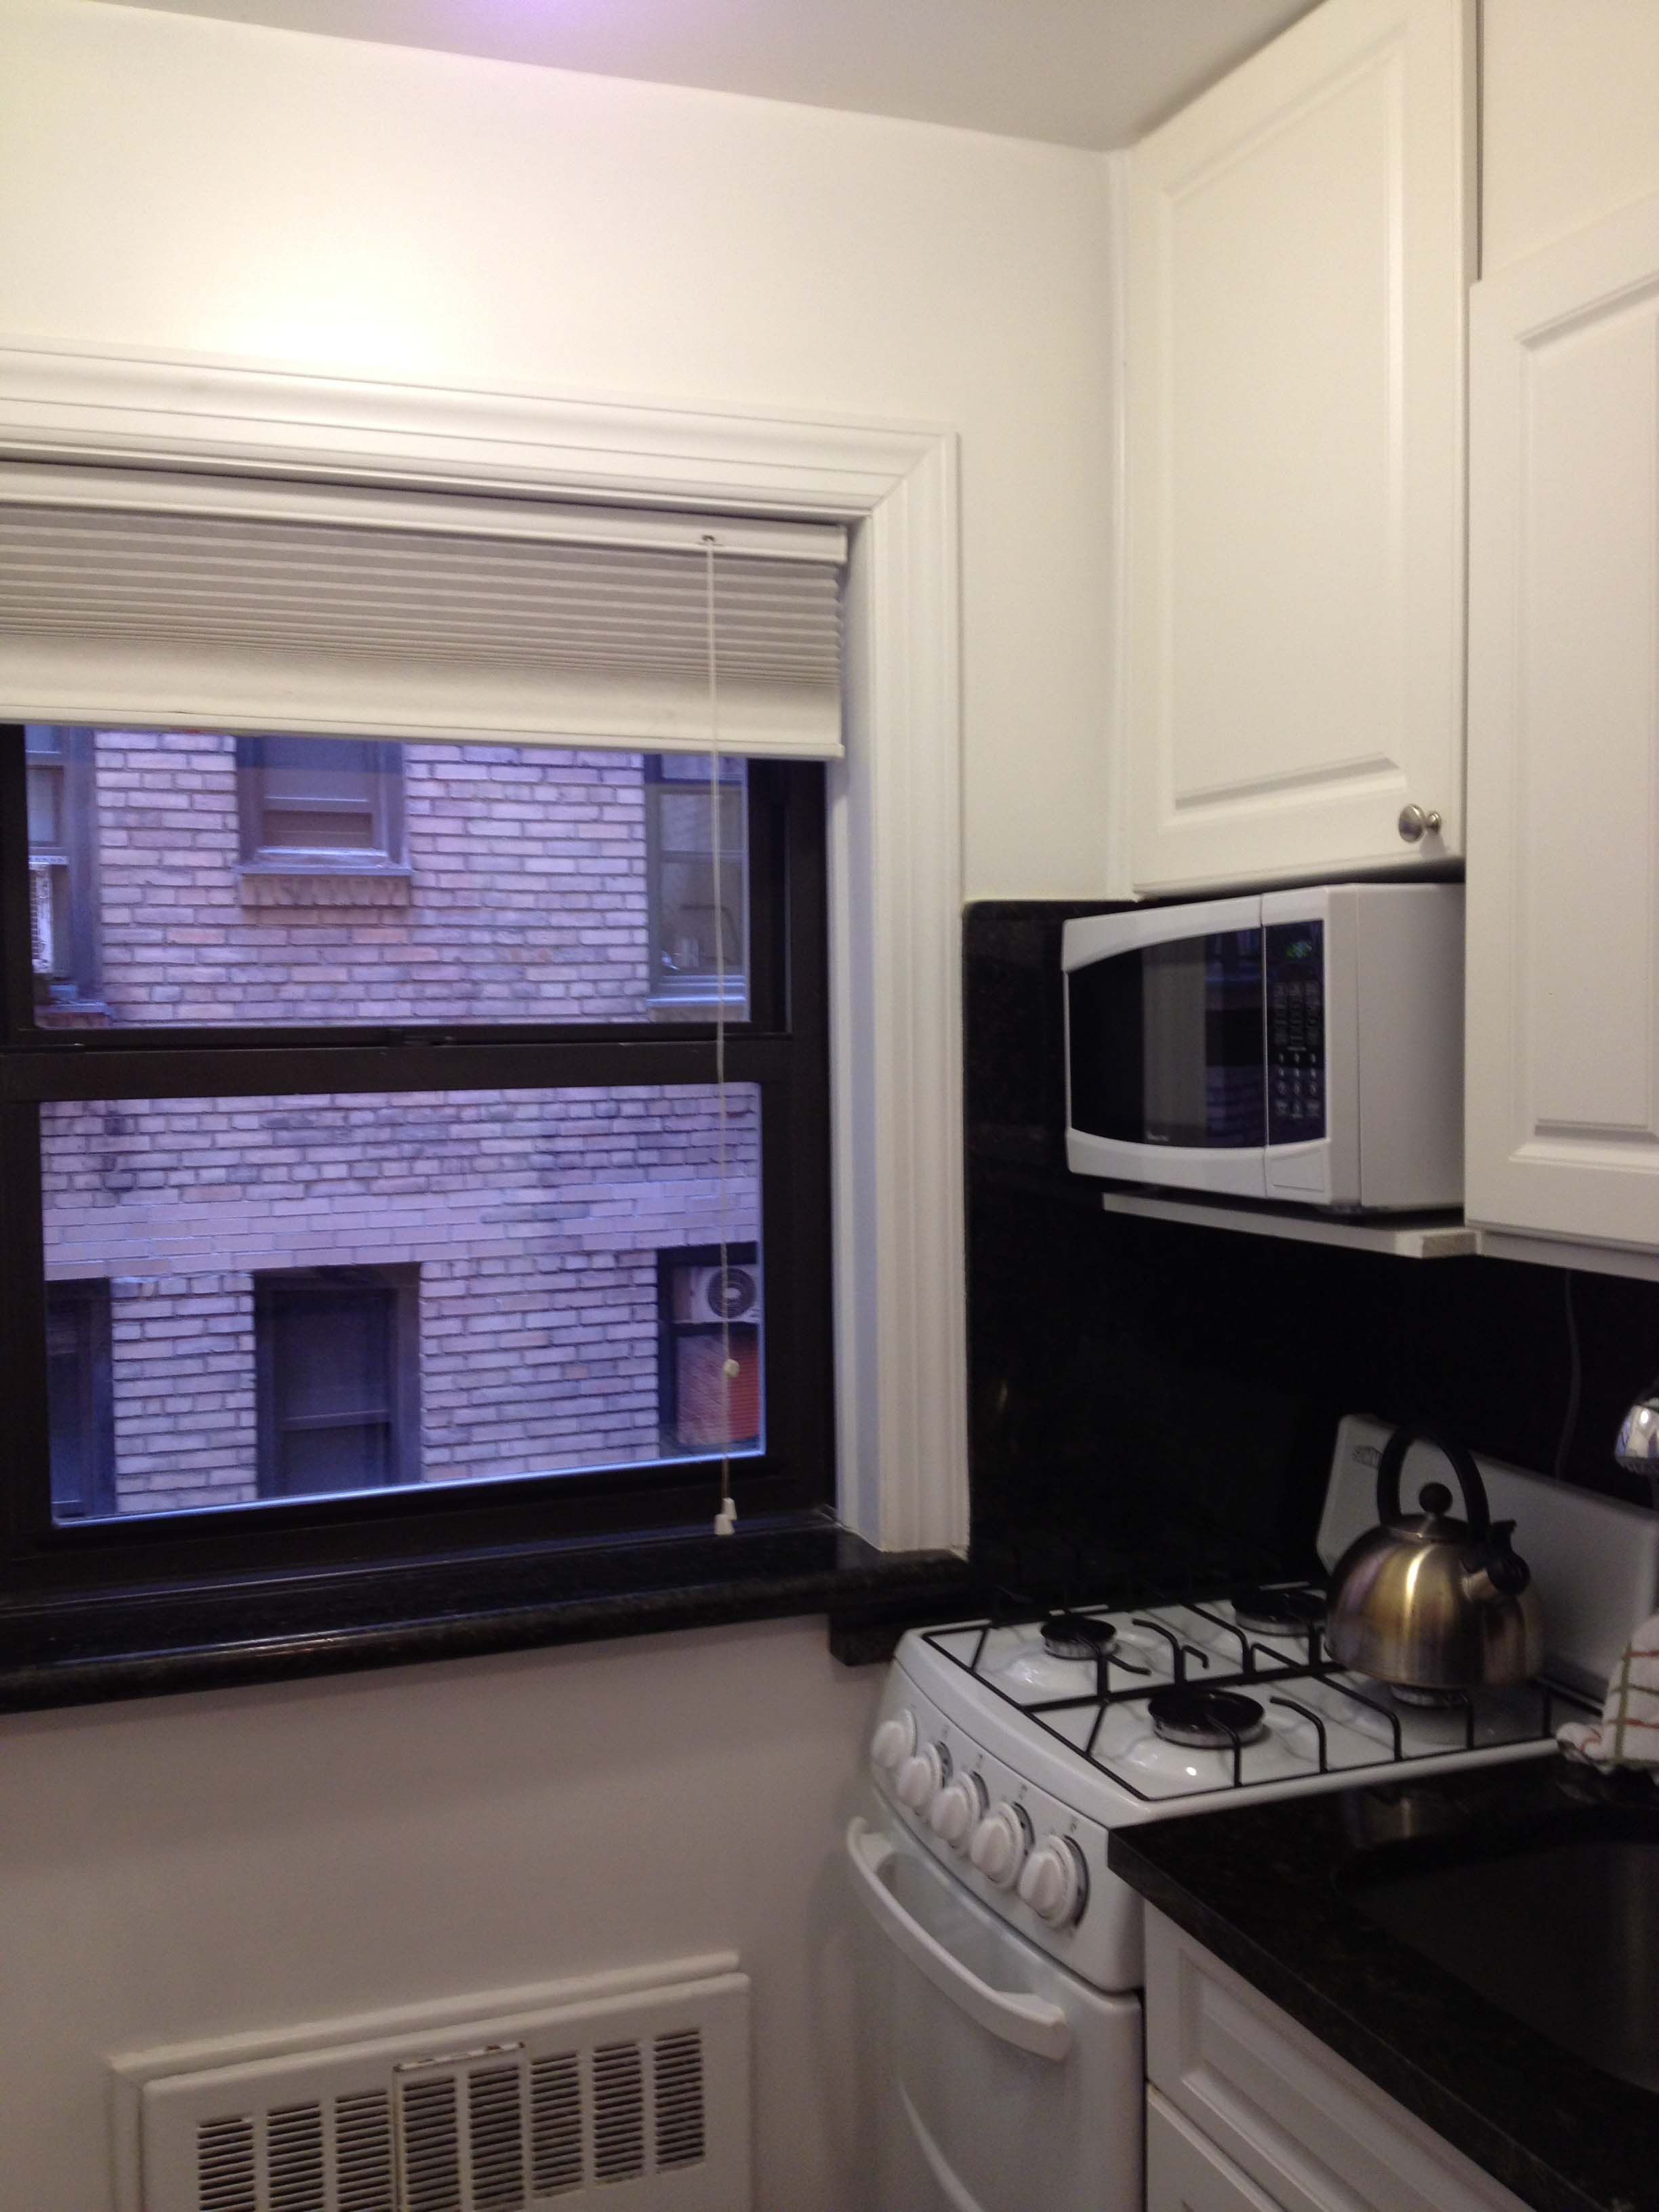 blog new nyc your for york smith city apartment dream chris room rent s find